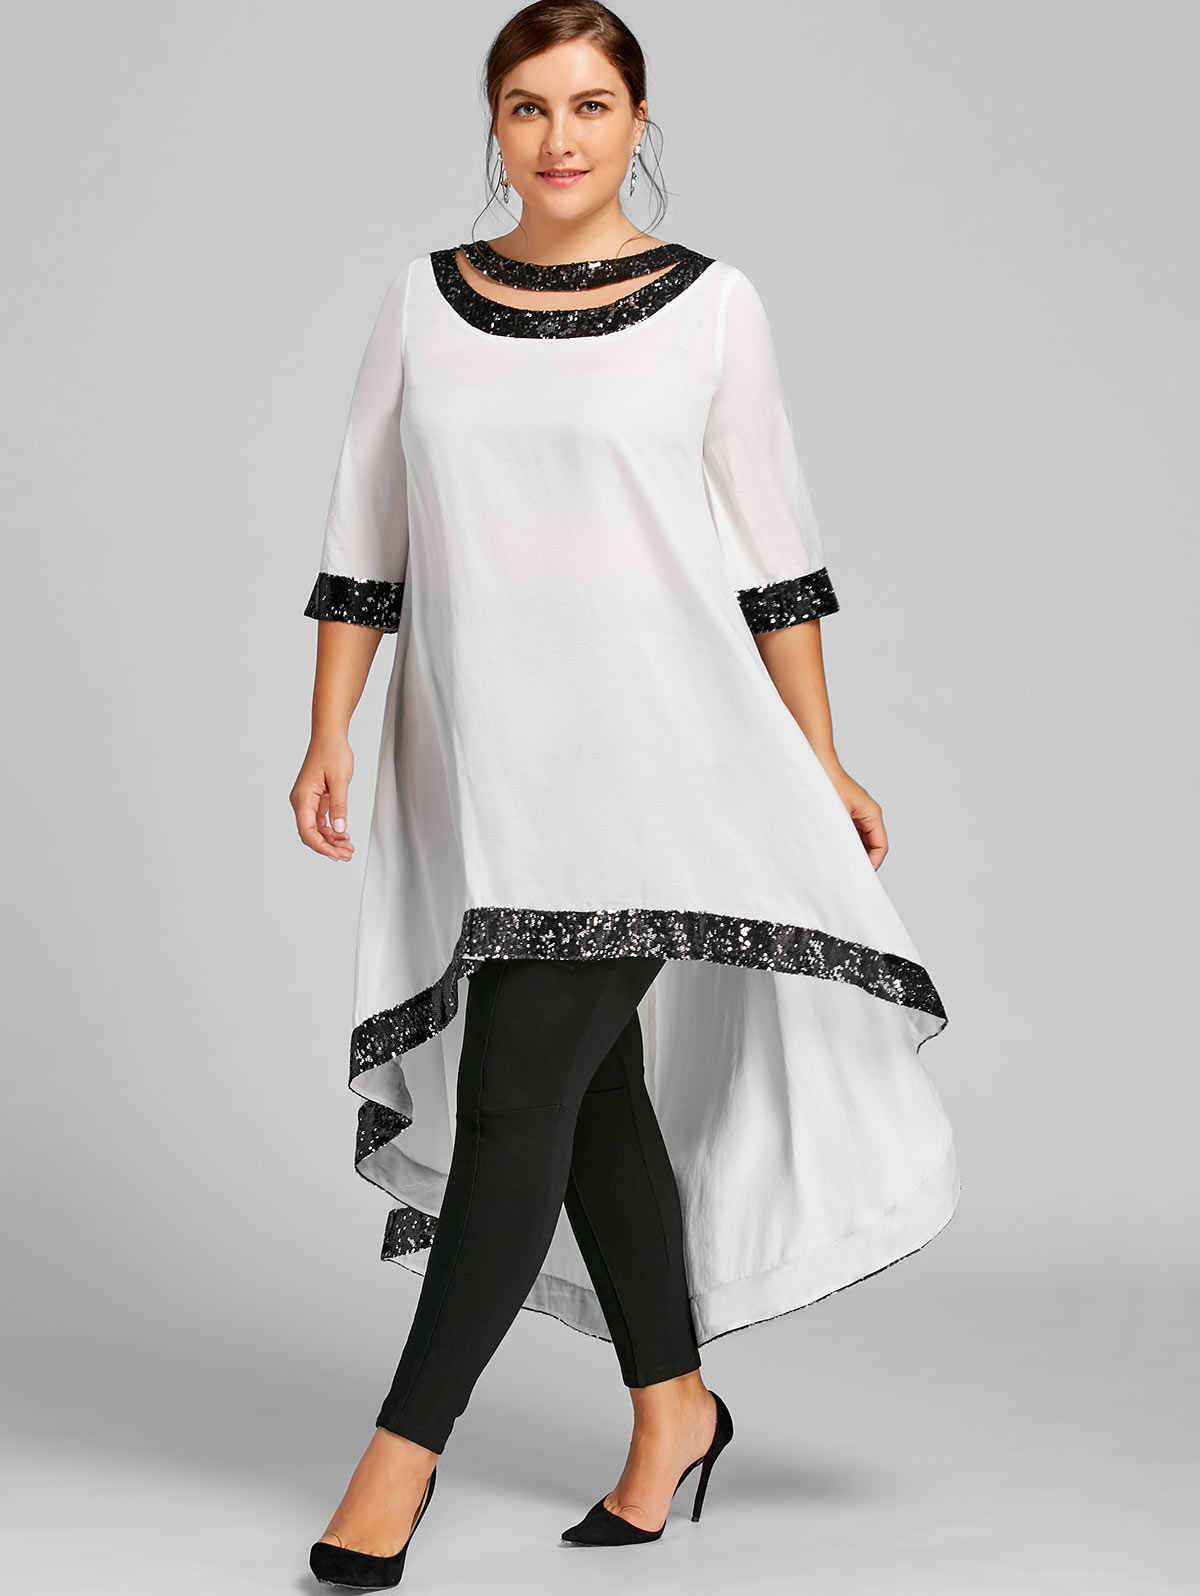 a94f7fa283 Detail Feedback Questions about Gamiss Women Spring Plus Size 5XL ...